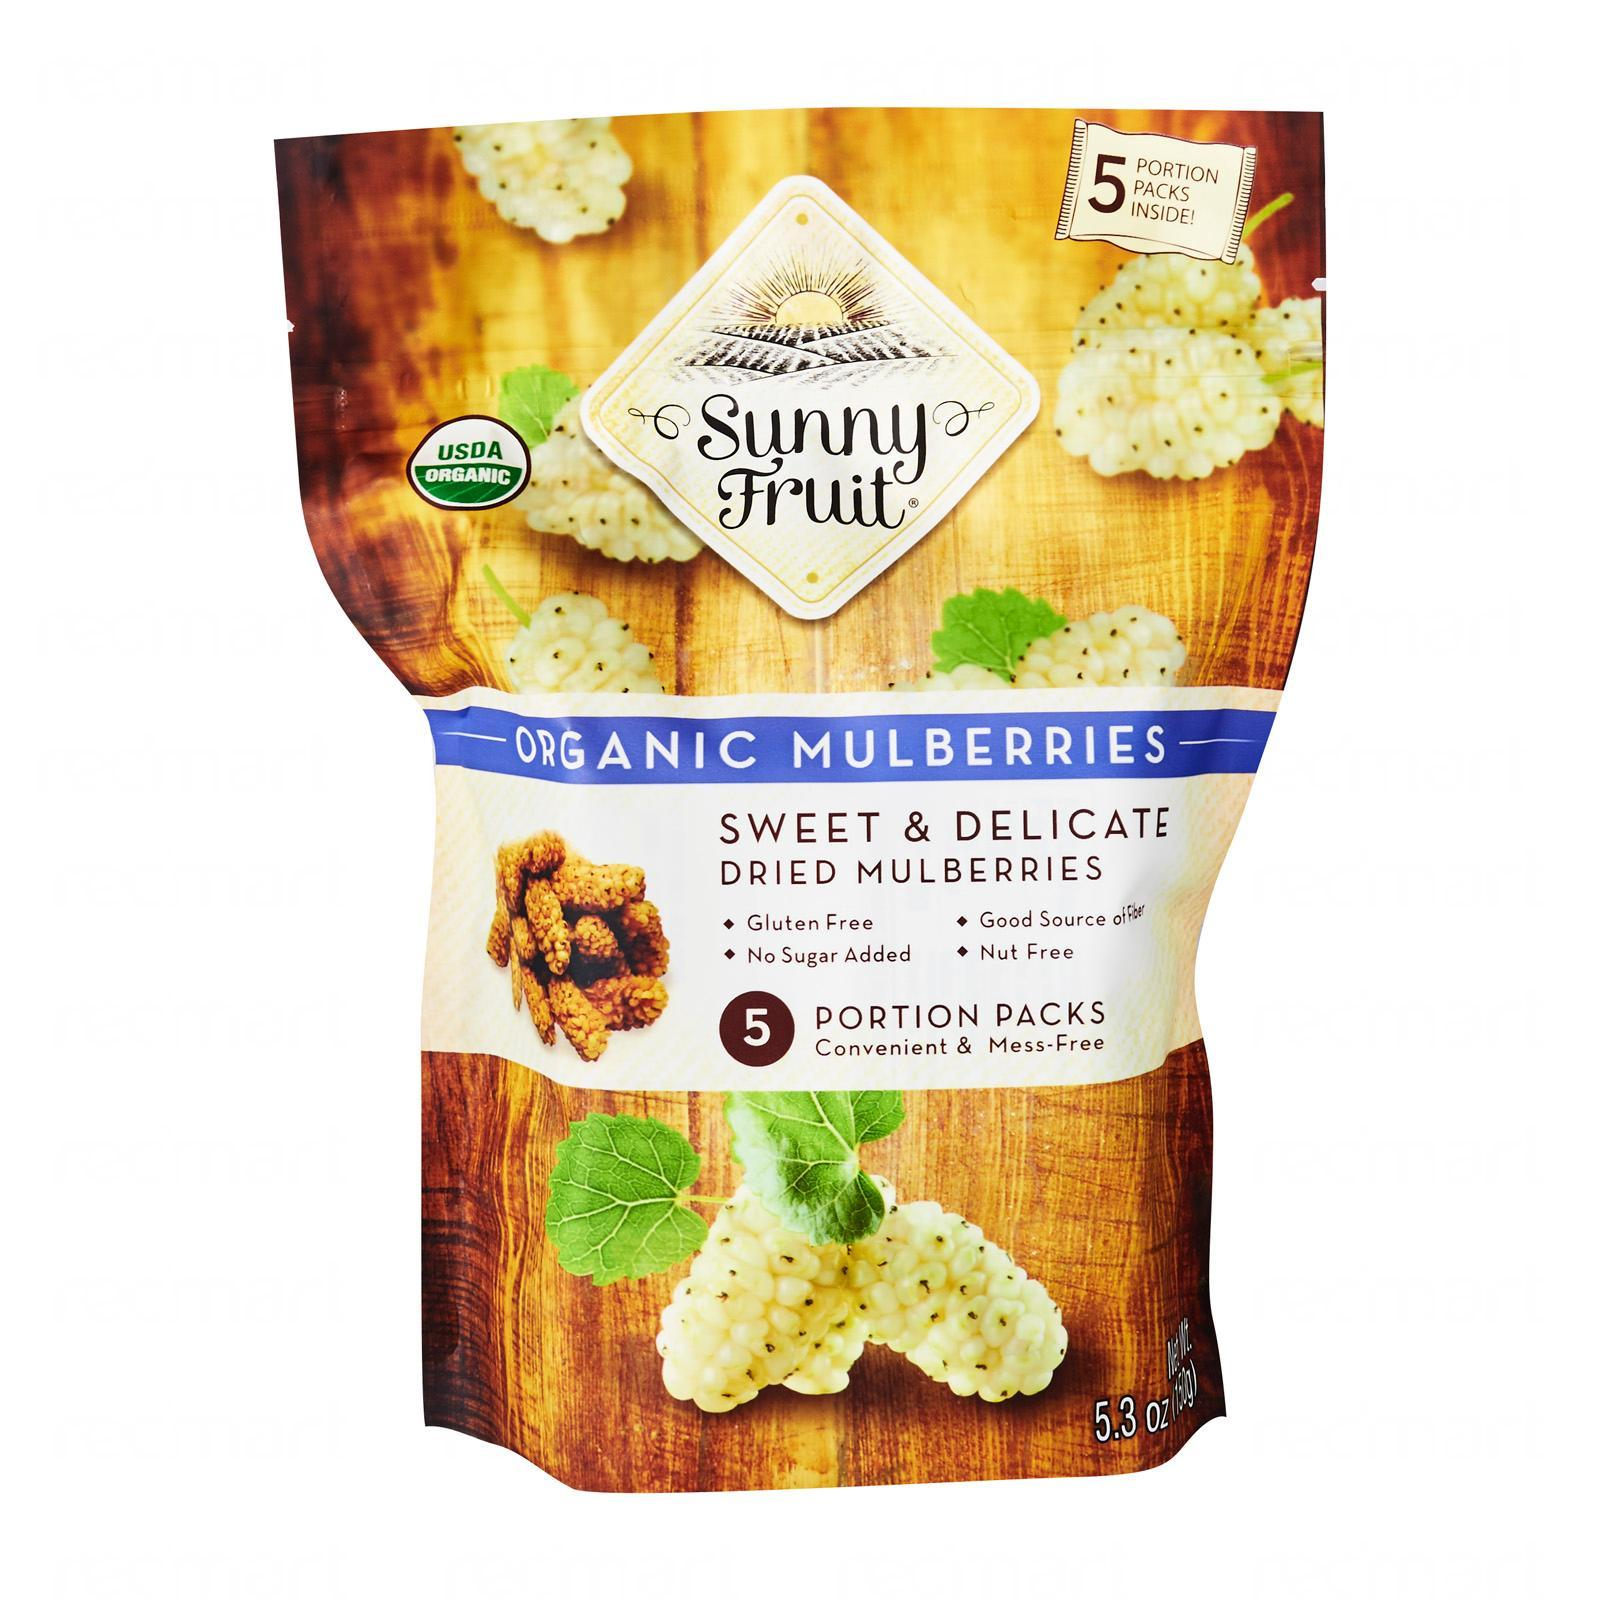 Sunny Fruit Organic Mulberries (5 Packs) - By Wholesome Harvest